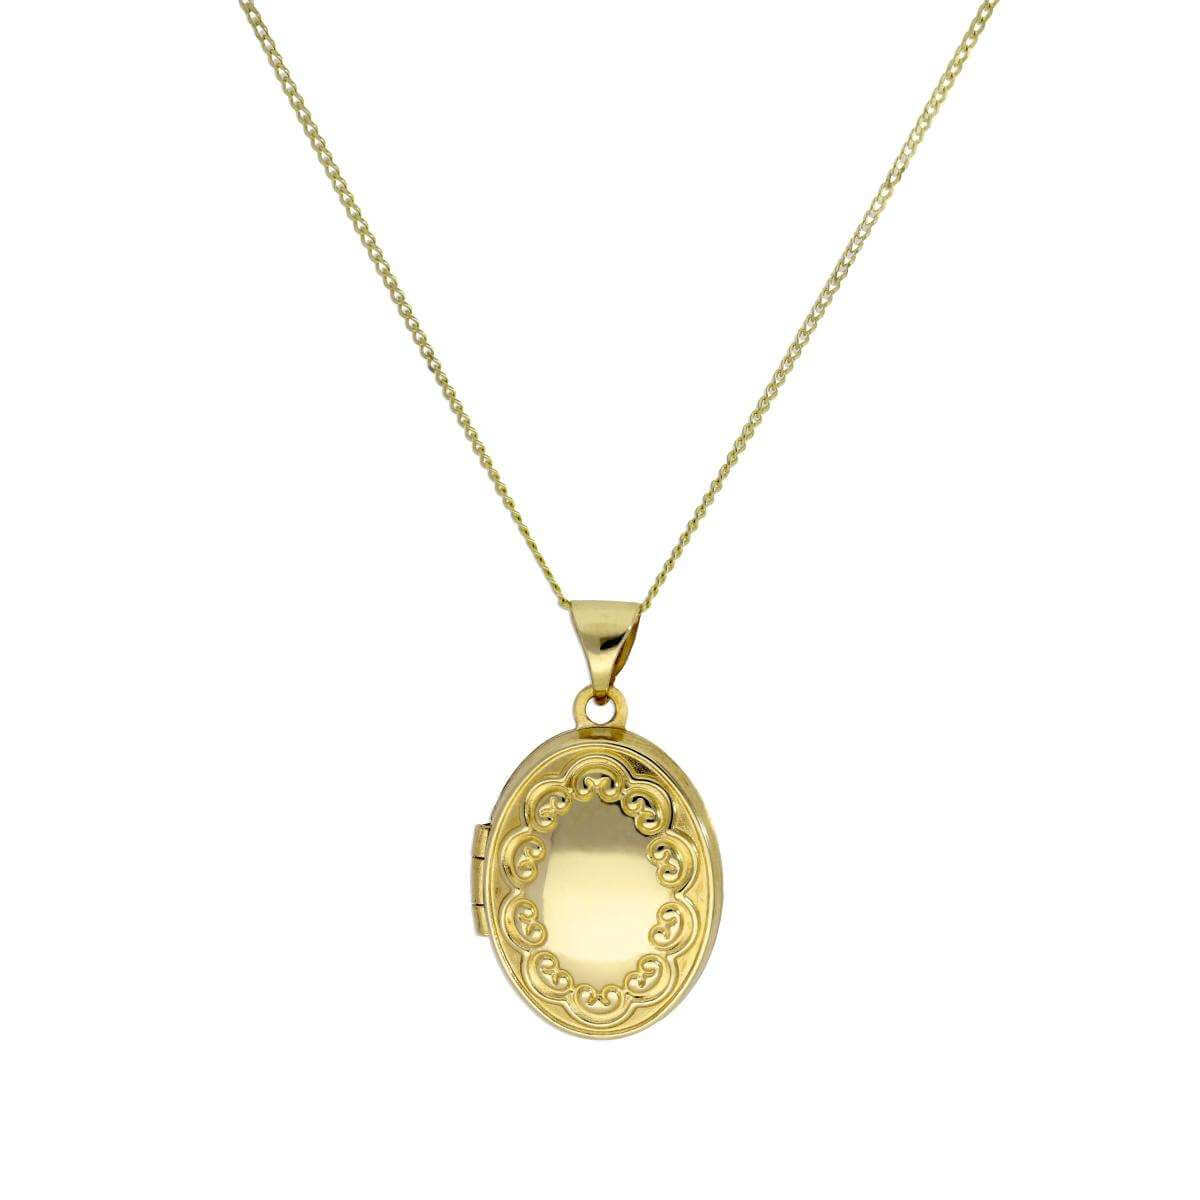 9ct Gold Oval Locket on Chain with Floral Design on Chain 16 - 18 Inches